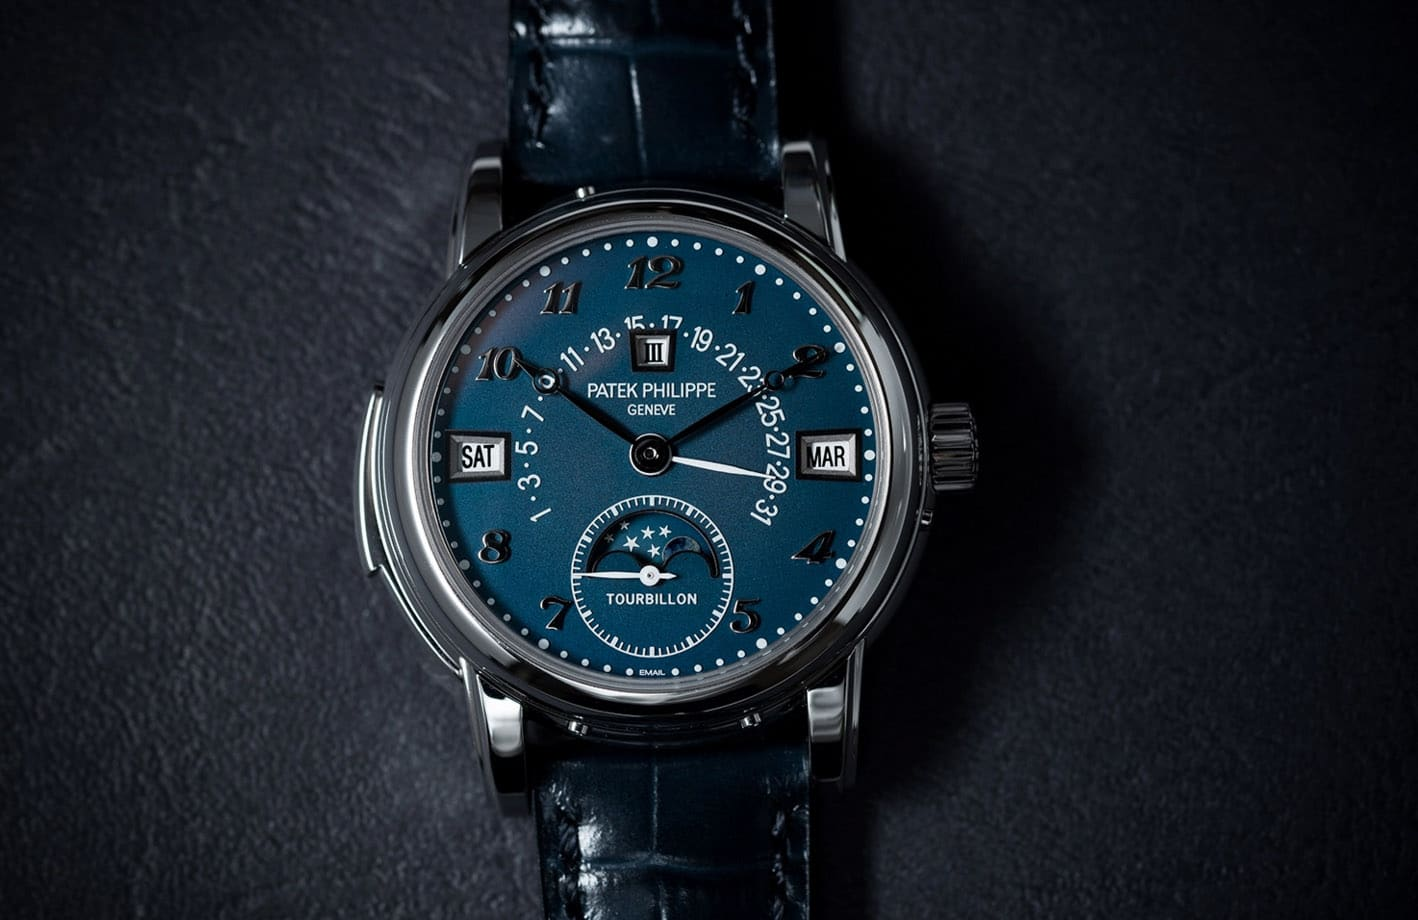 Only Watch - Patek Philippe Ref. 5016A